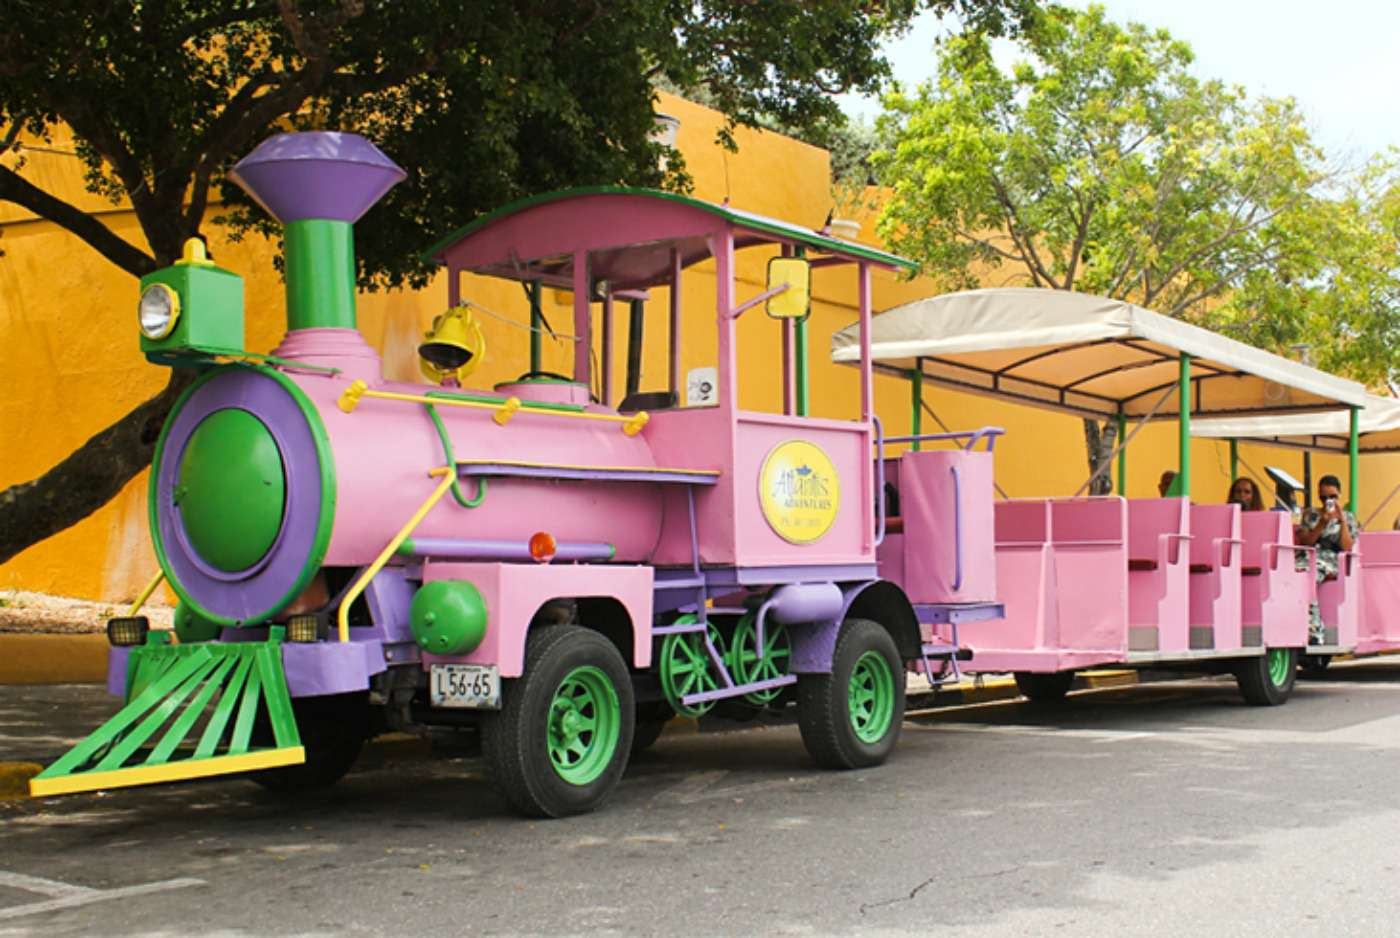 Curaçao Trolley, painted in pink, purple, and green, parked at a stop on its route while people sit in the back.